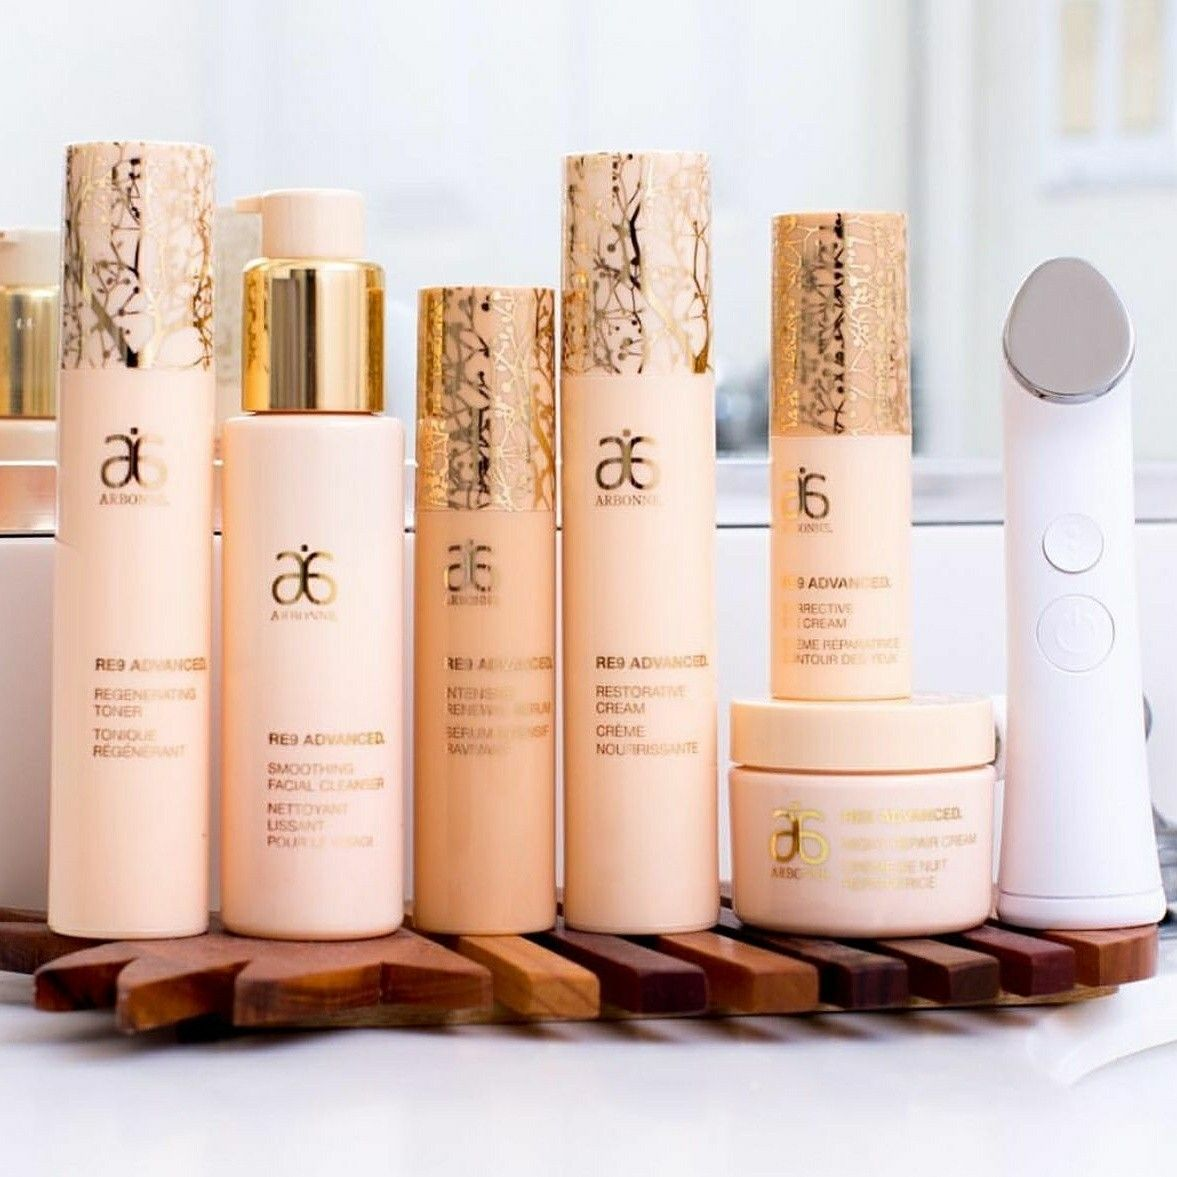 Get your Arbonne products today!! 🌱🌻💚😄 www.TabithaFuentes